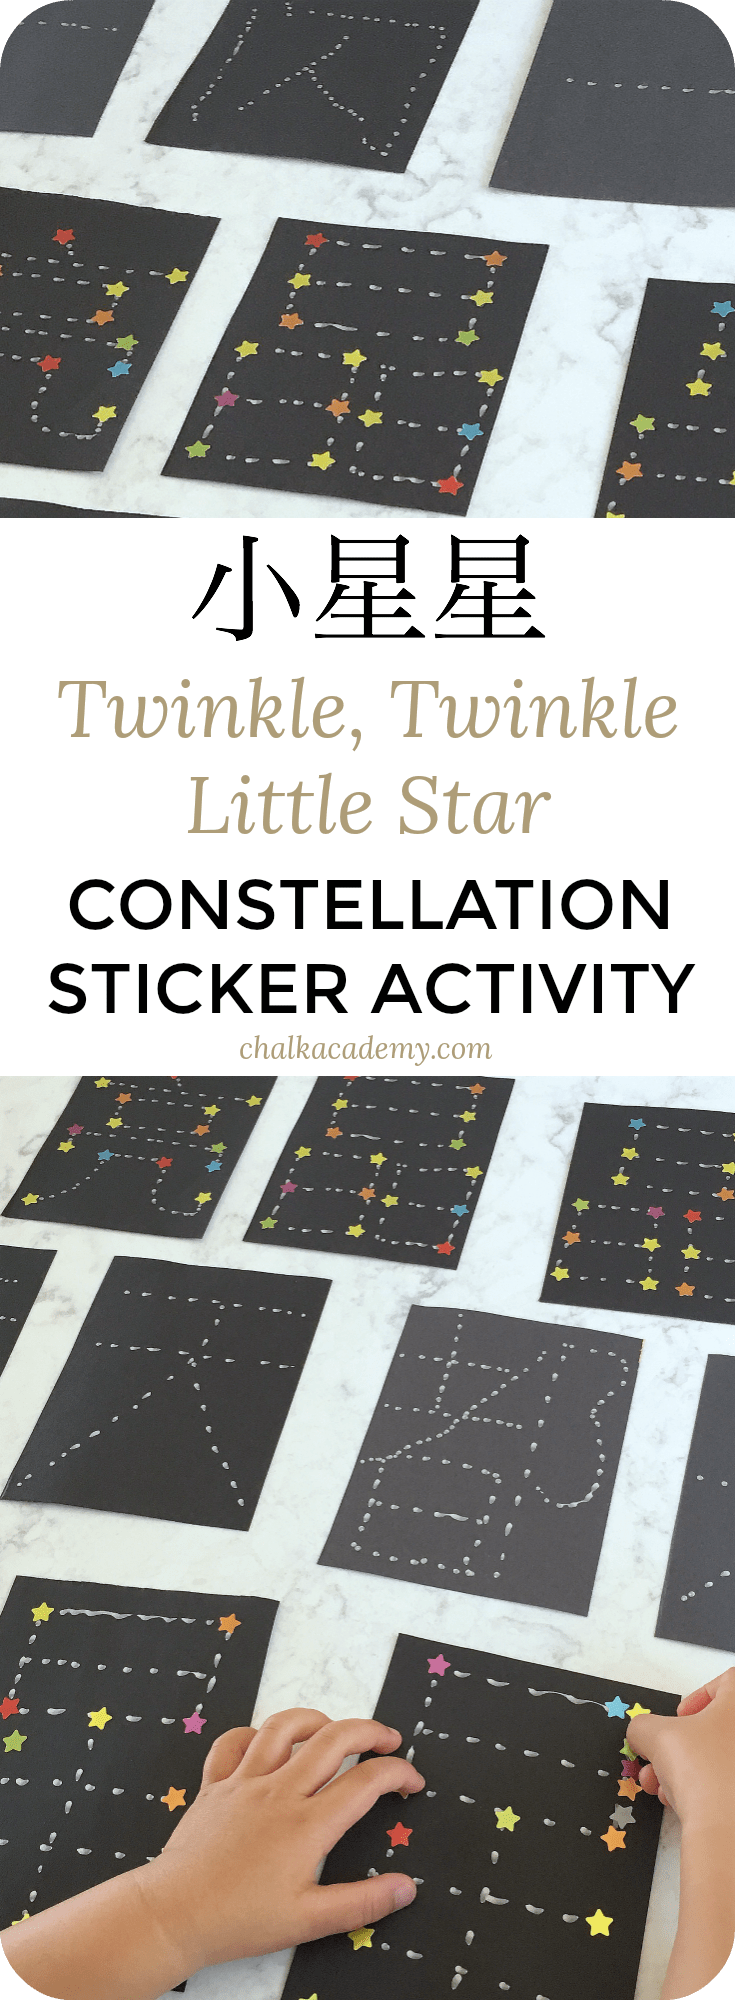 小星星 Twinkle, Twinkle Little Star in Chinese Sticker